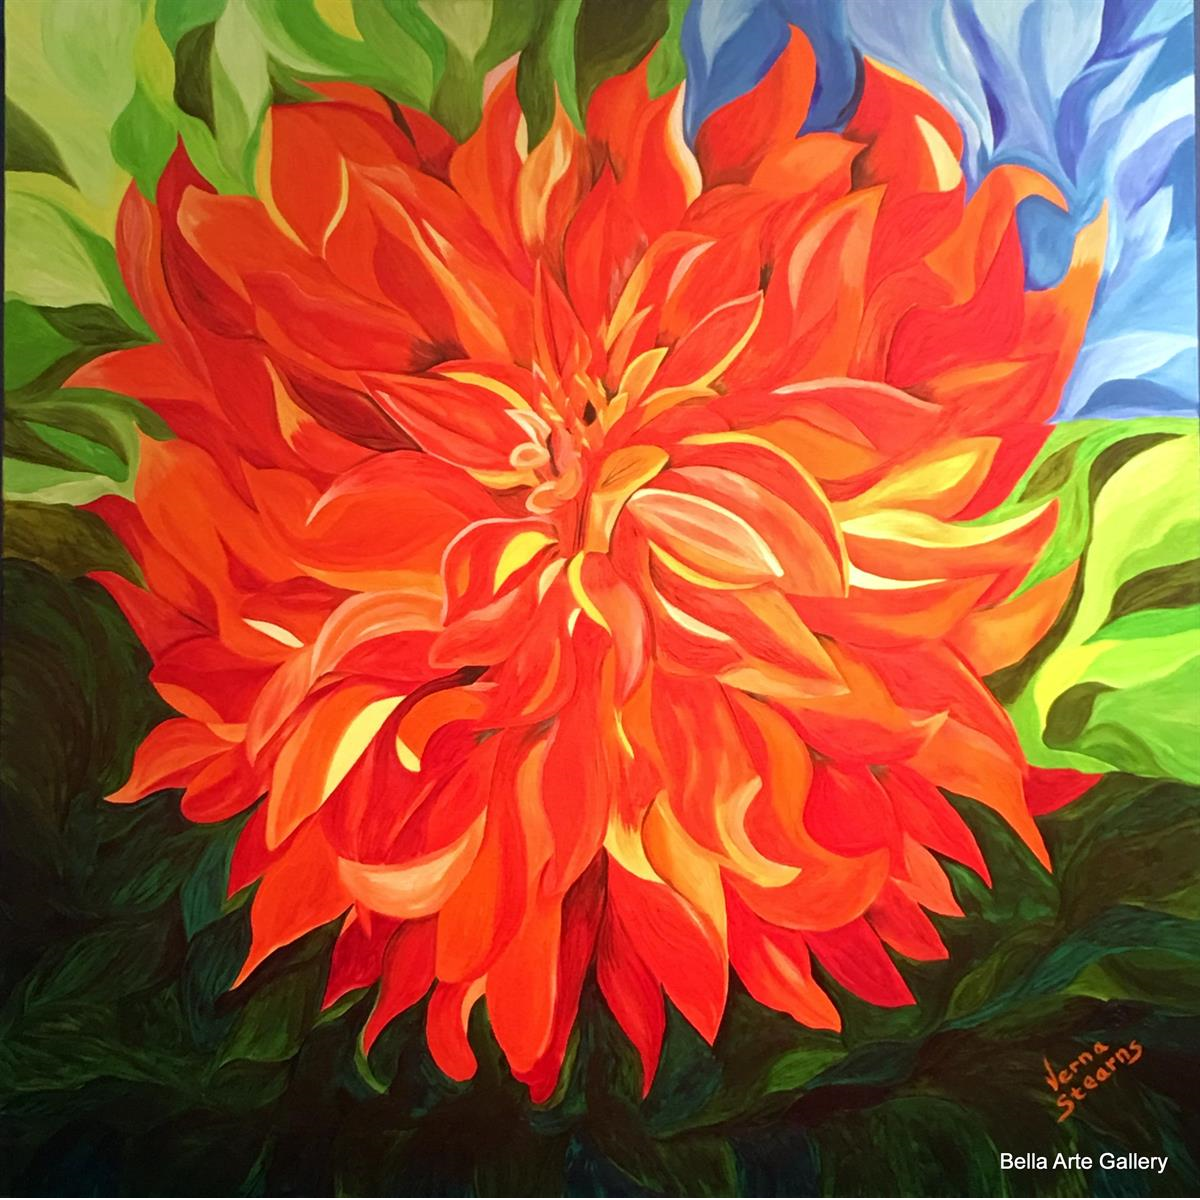 flowers, oil painting, artist Verna Stearns, MS, colorful flowers, large florals, brilliant colors, all about the color